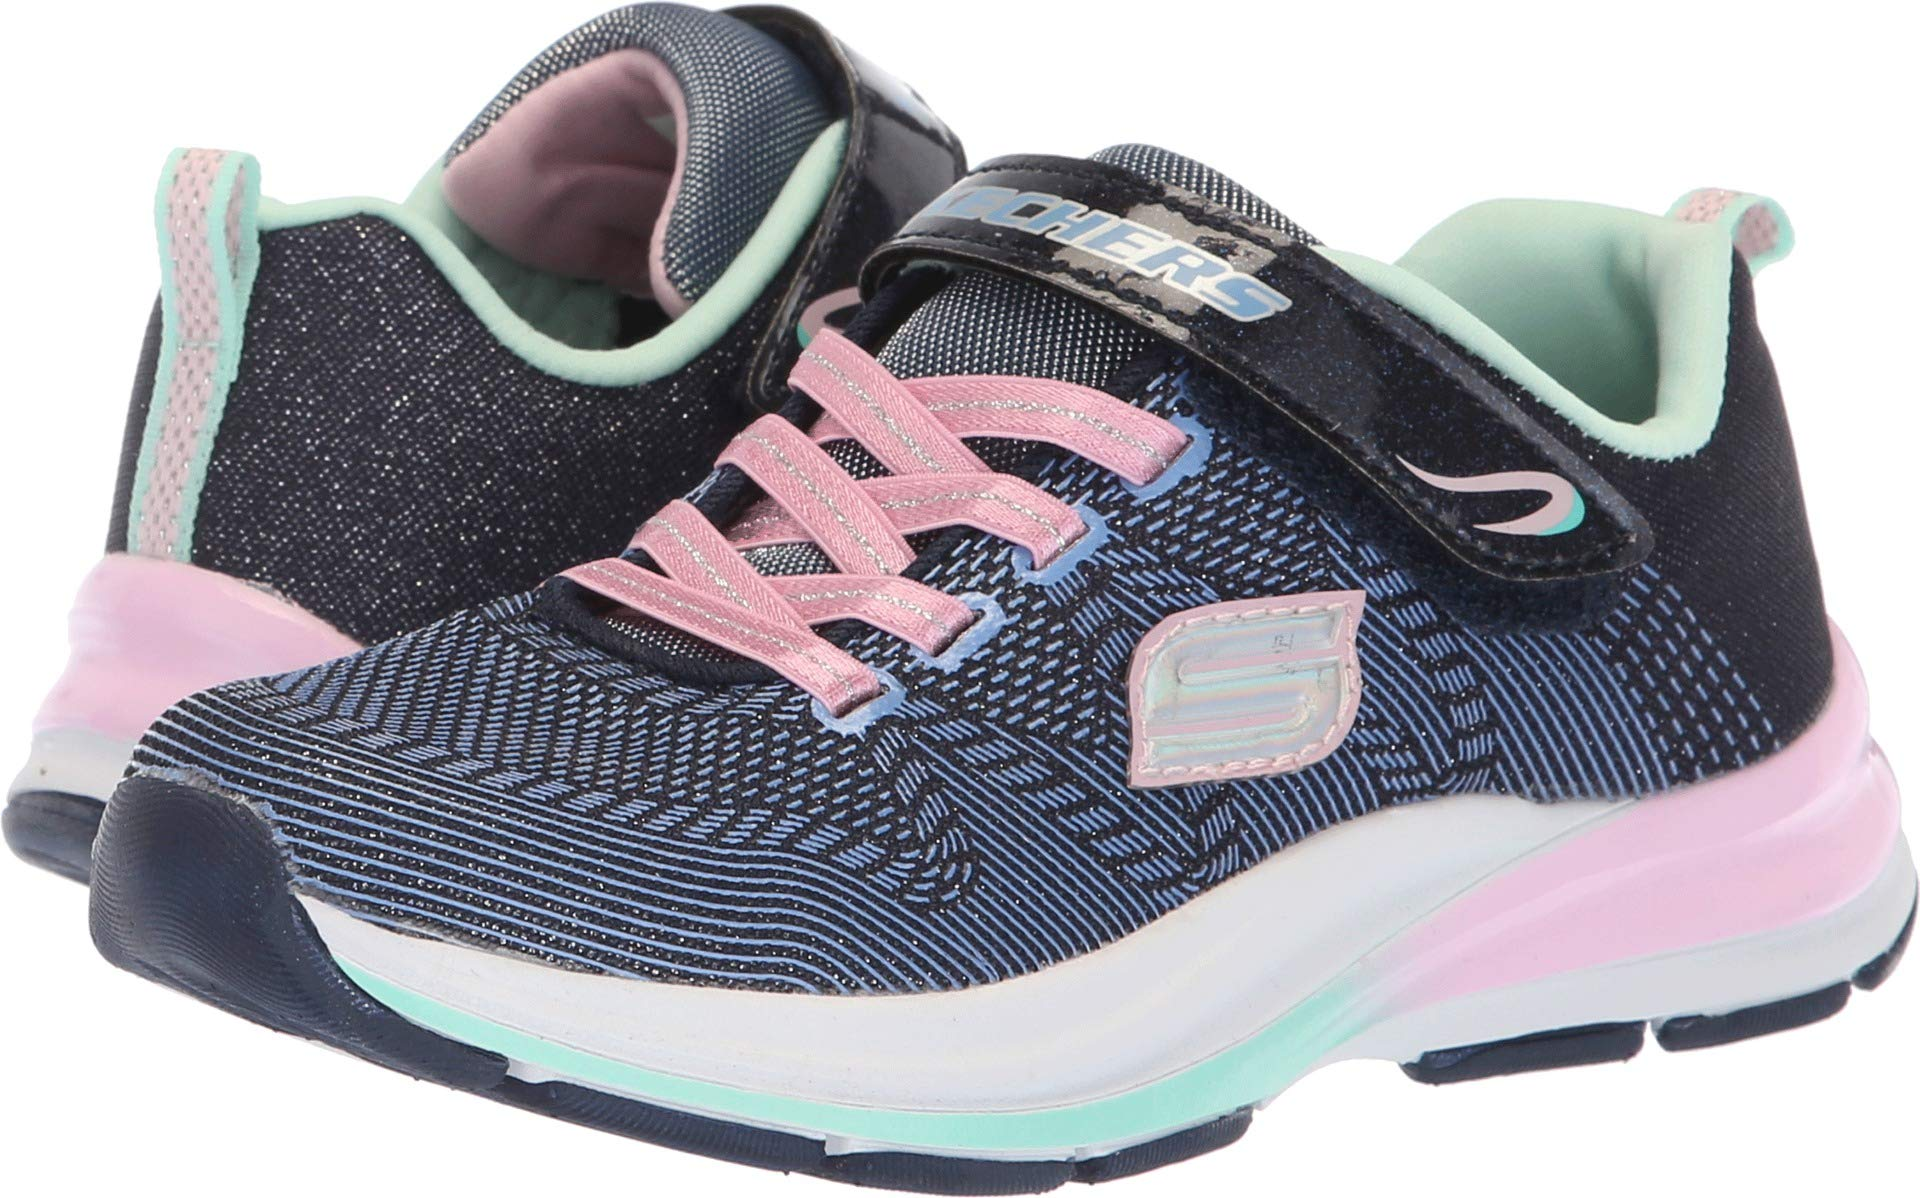 Skechers Kids Girls' Double Strides-Duo Dash Sneaker, Nvpk, 2 Medium US Little Kid